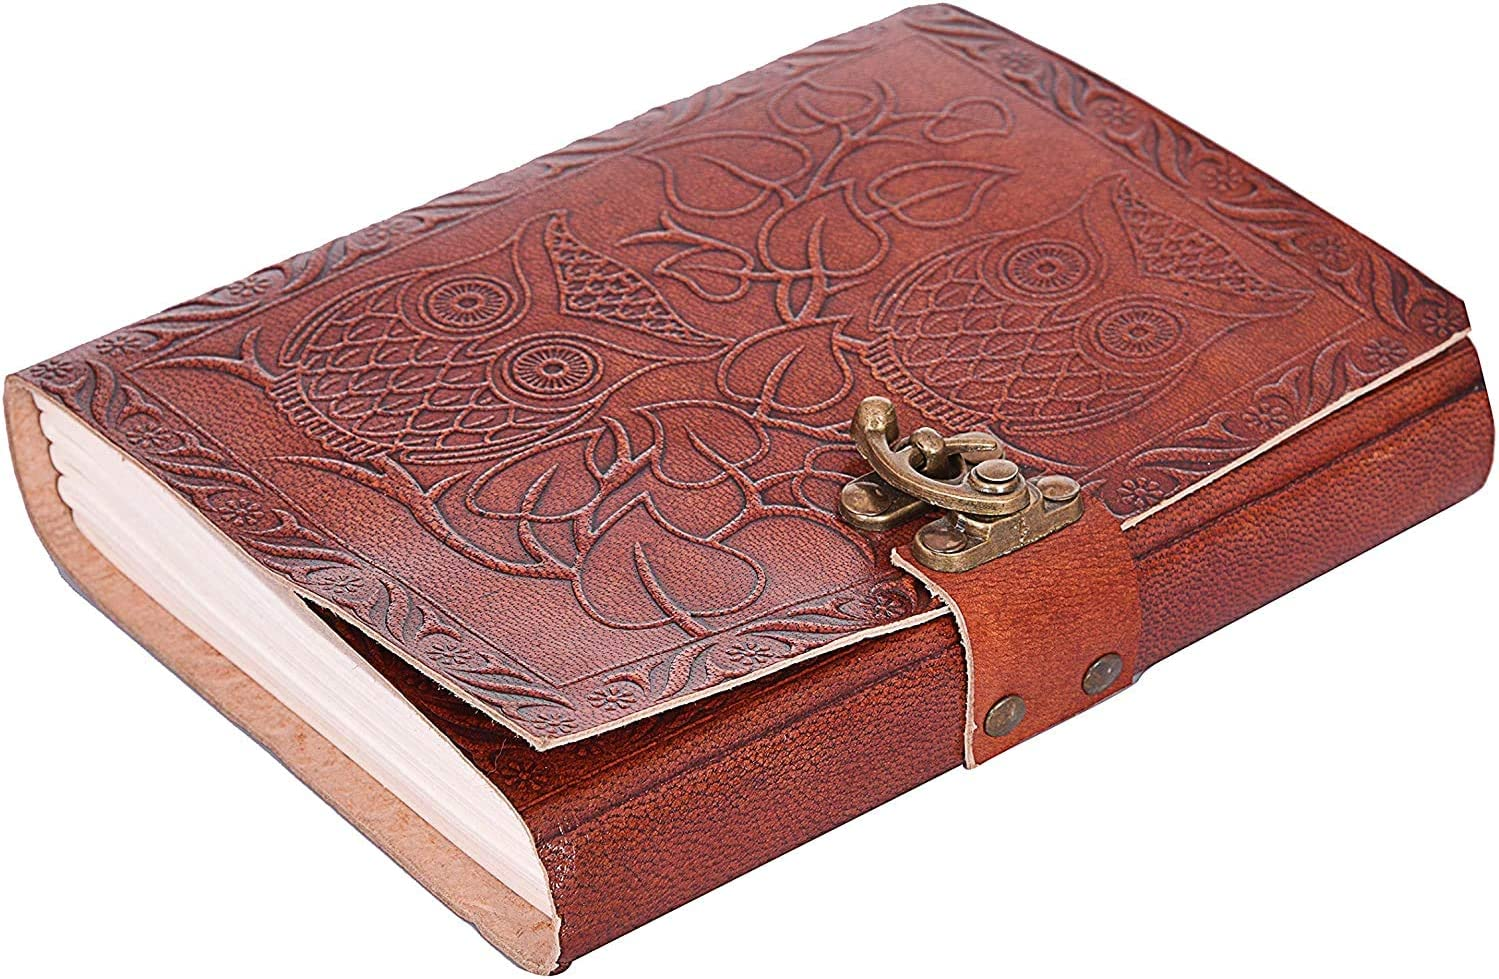 Antique Handmade Leather Bound Daily Notepad for Men /& Women Unlined Handmade Paper 7 x 5 Inches Owl Embossed Leather Journal Handmade Travelers Notebook by Swastik Leather